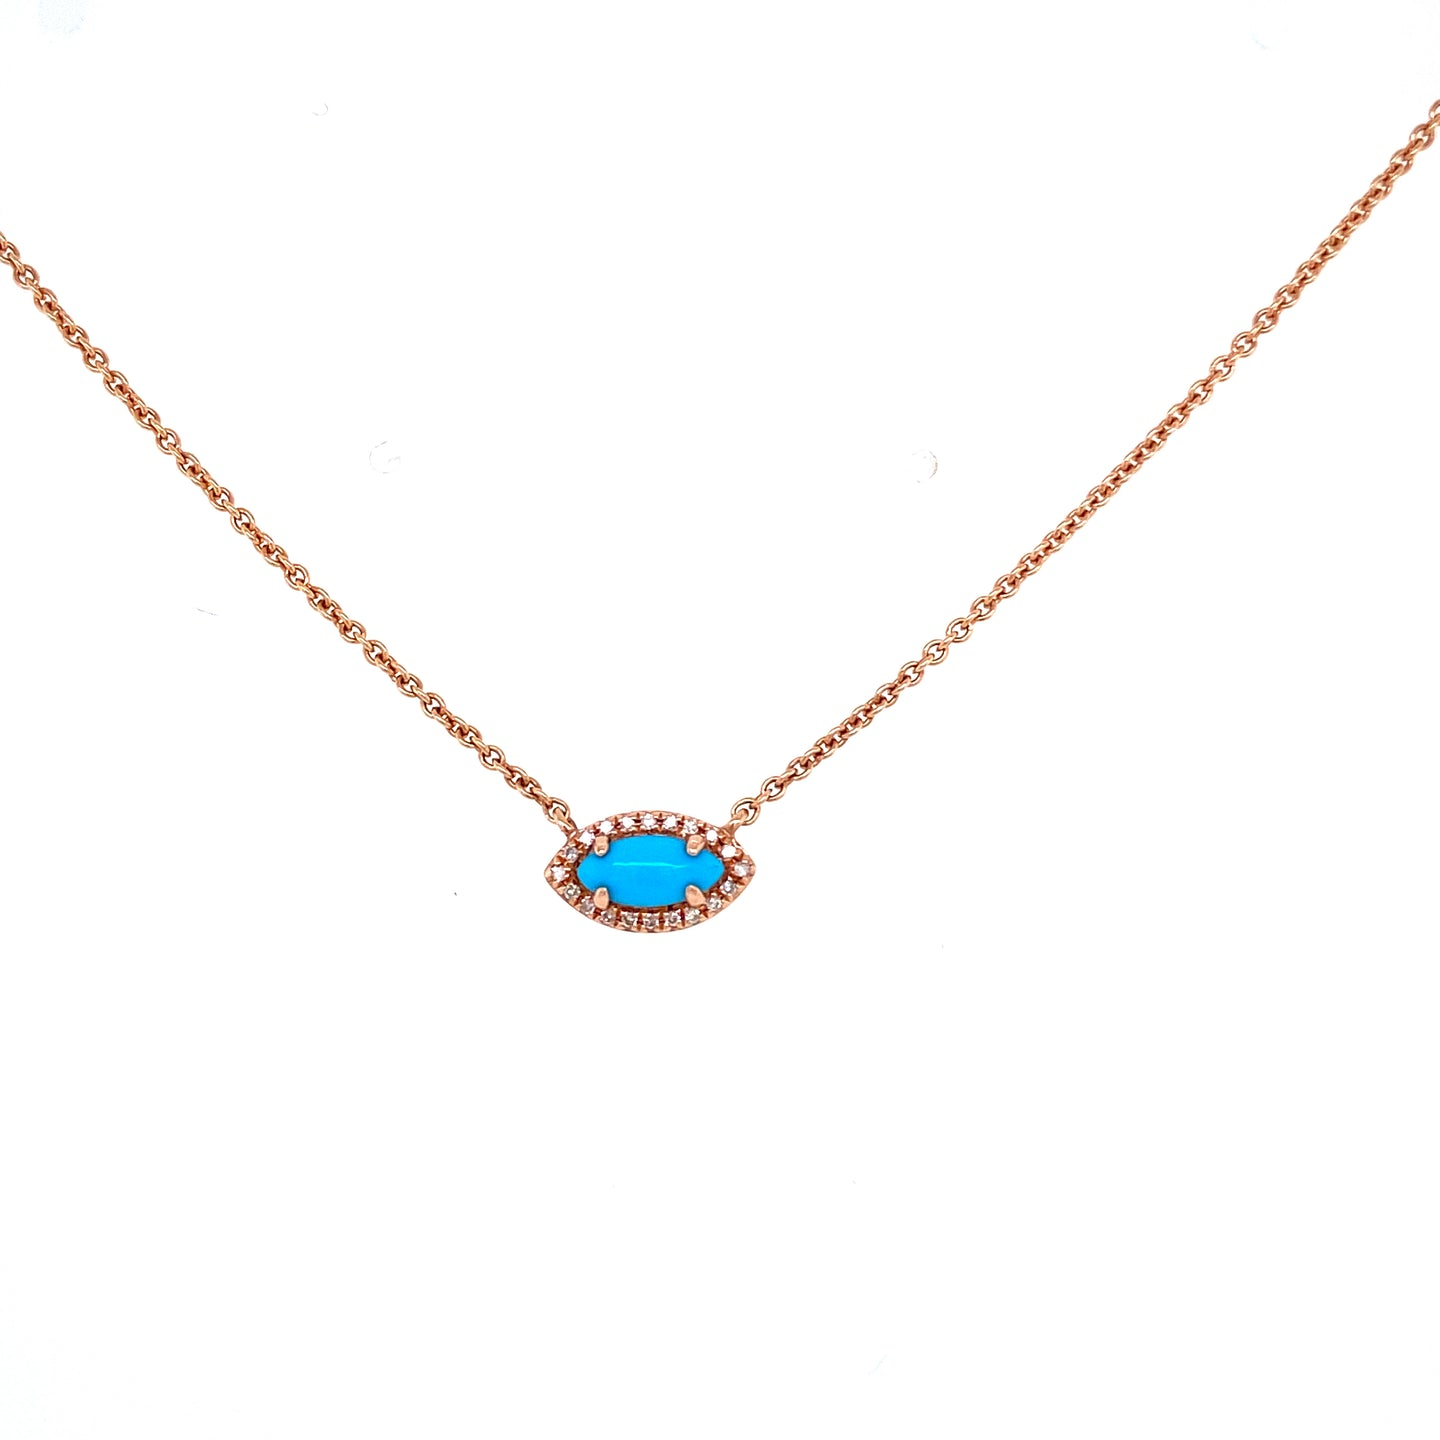 Marquis Shaped Turquoise Necklace